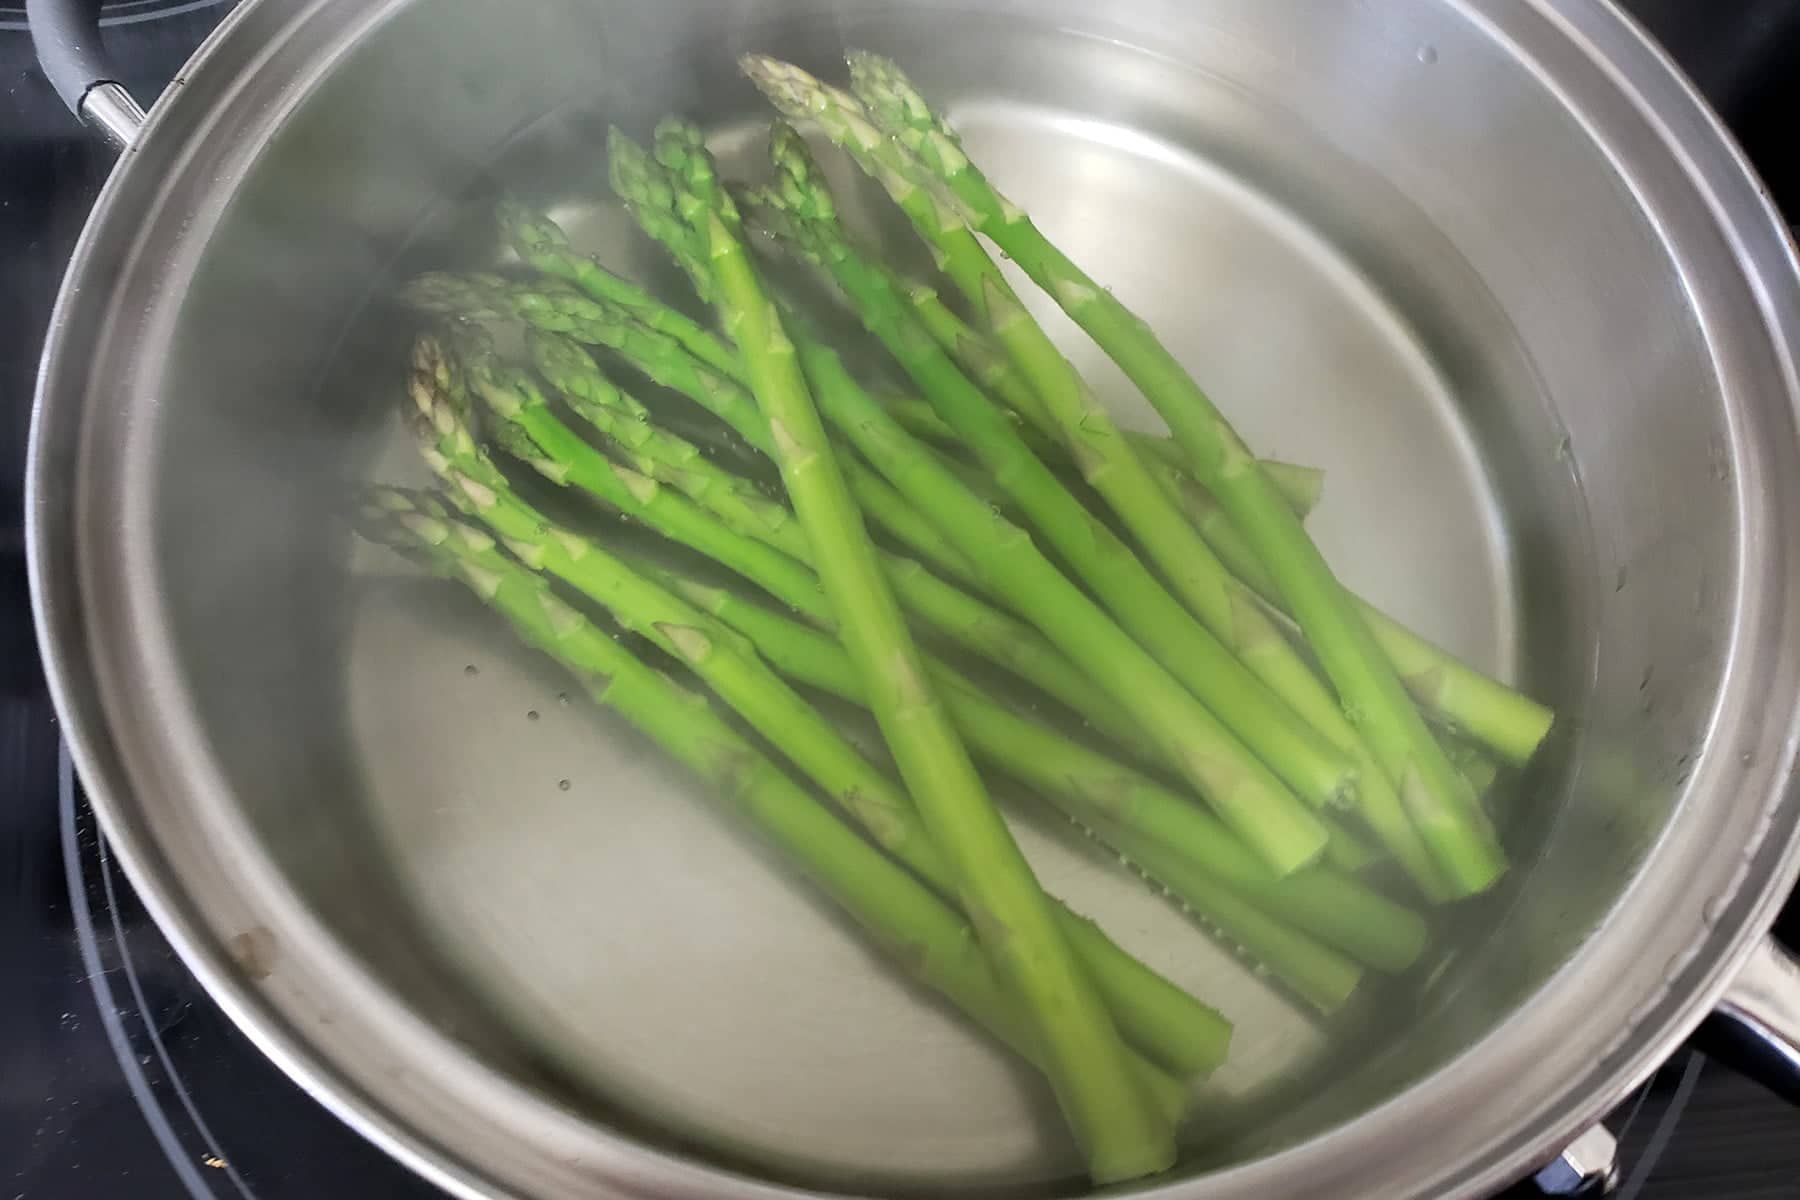 About a dozen spears of asparagus are shown simmering in a metal pan.